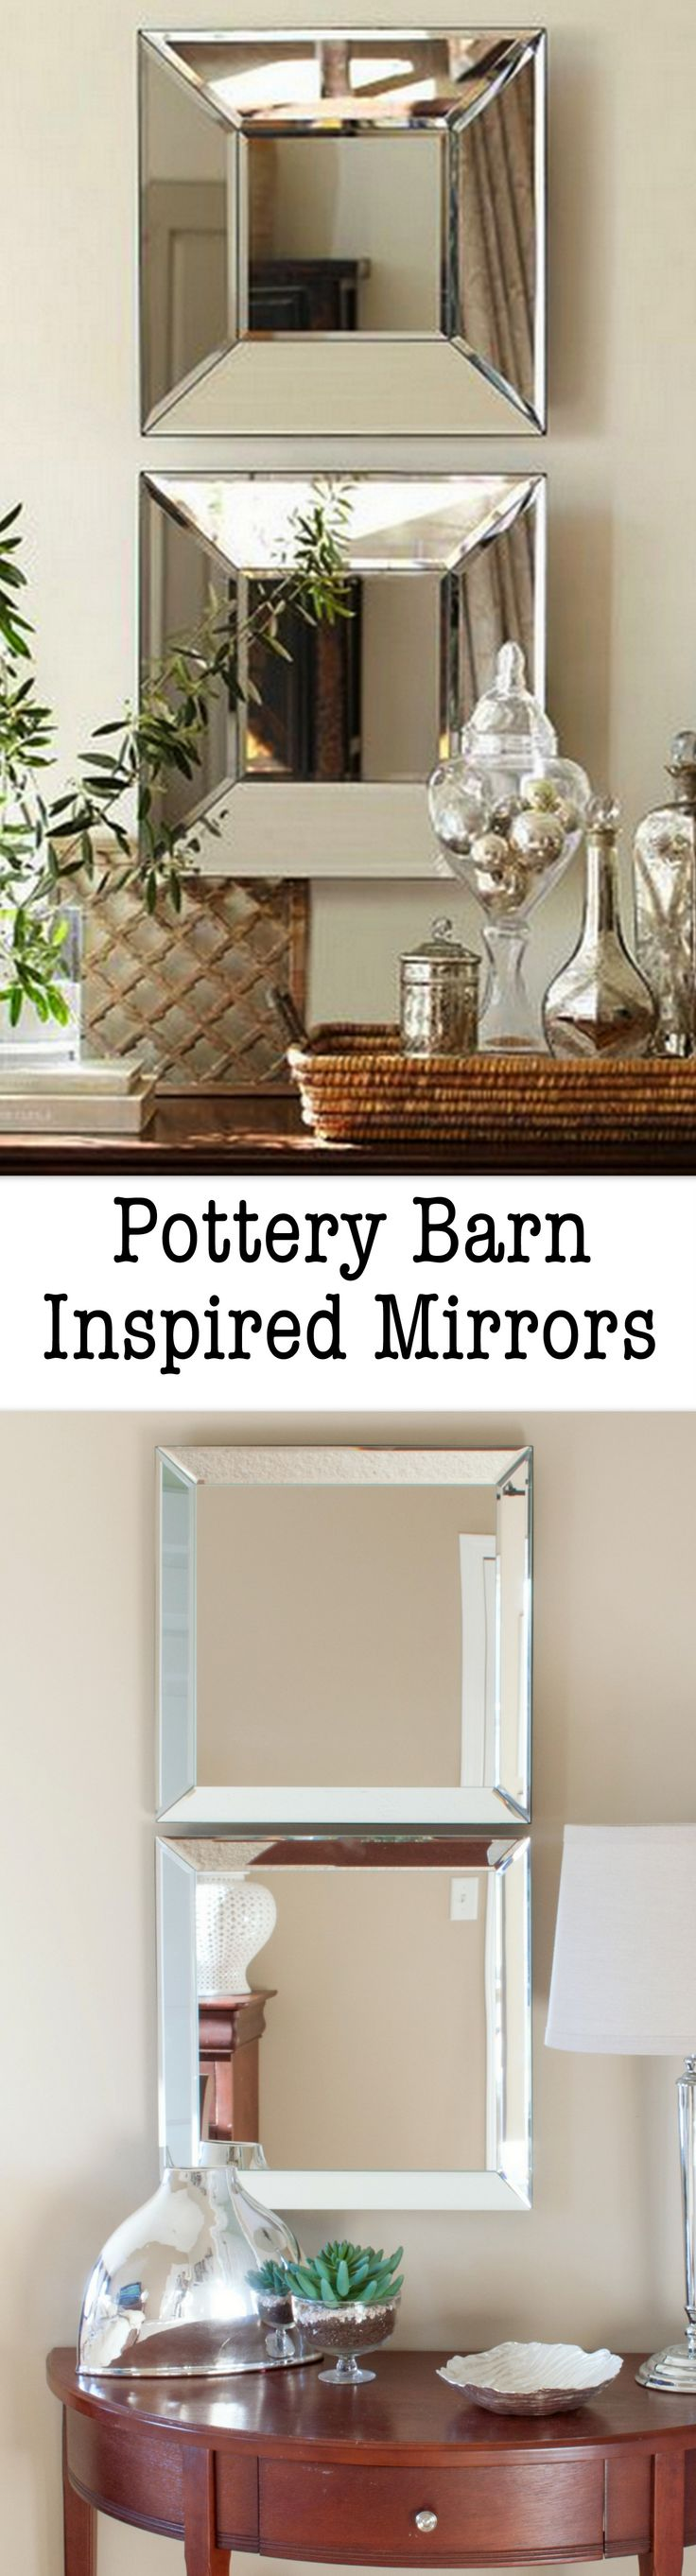 best Pottery barn images on Pinterest